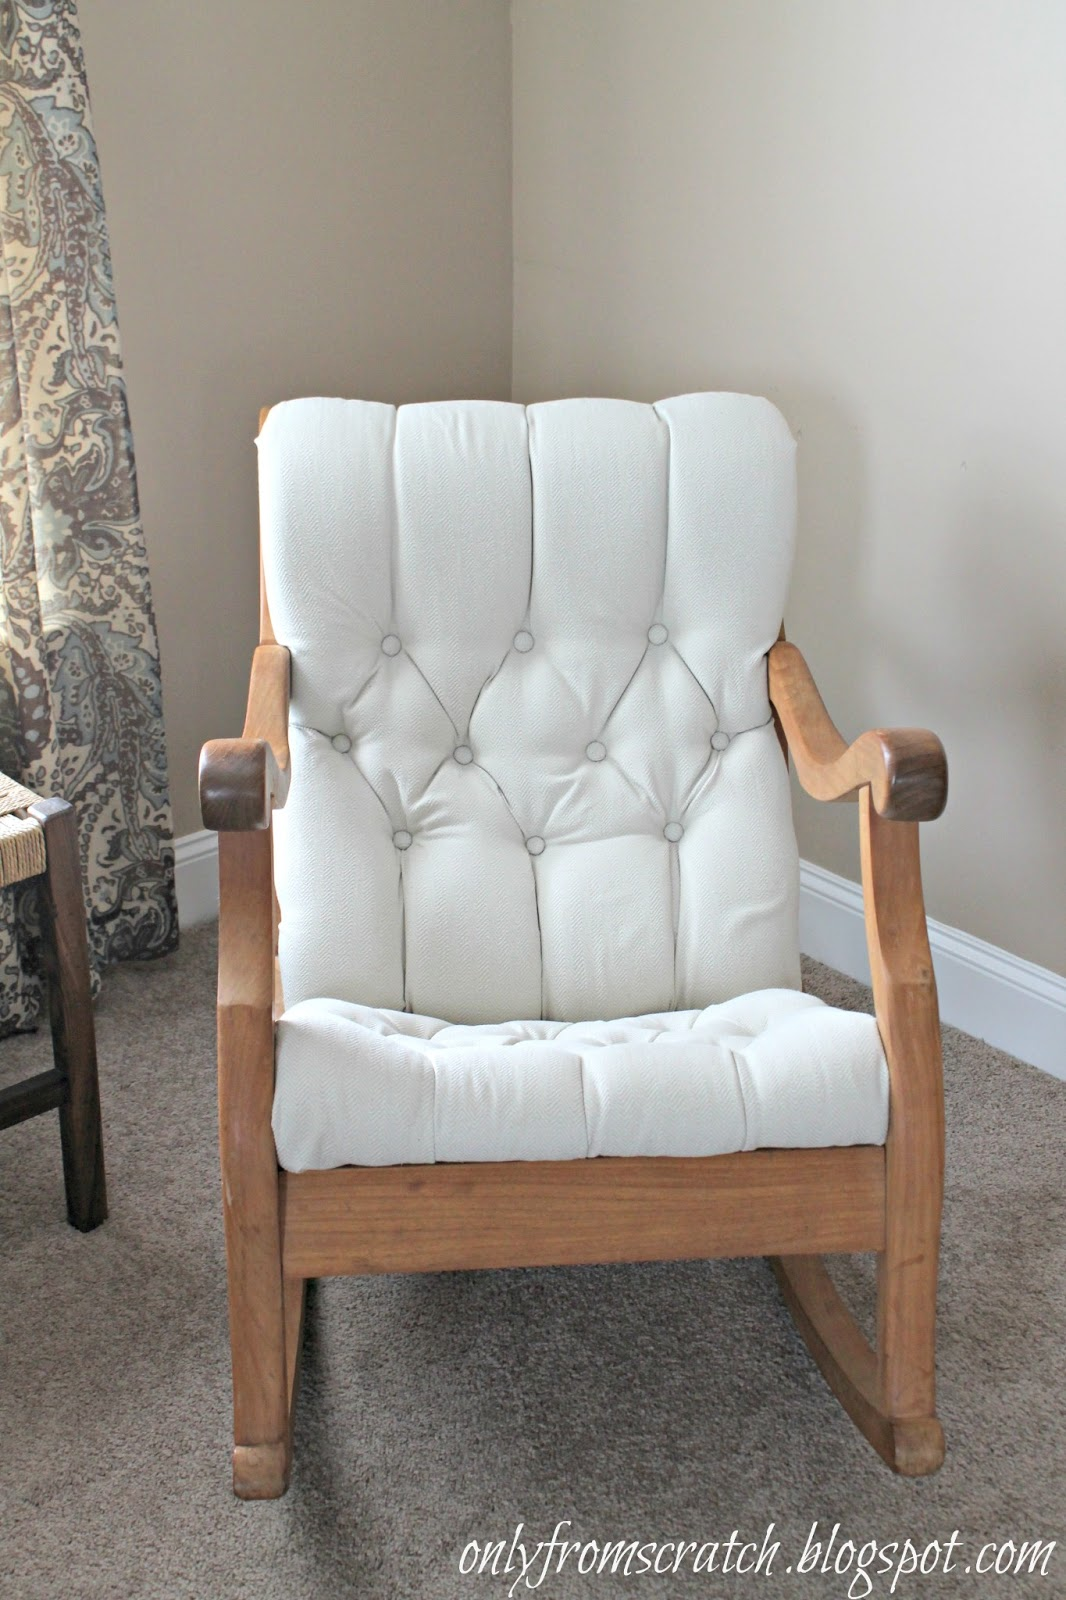 Only From Scratch Tufted Rocking Chair Redo